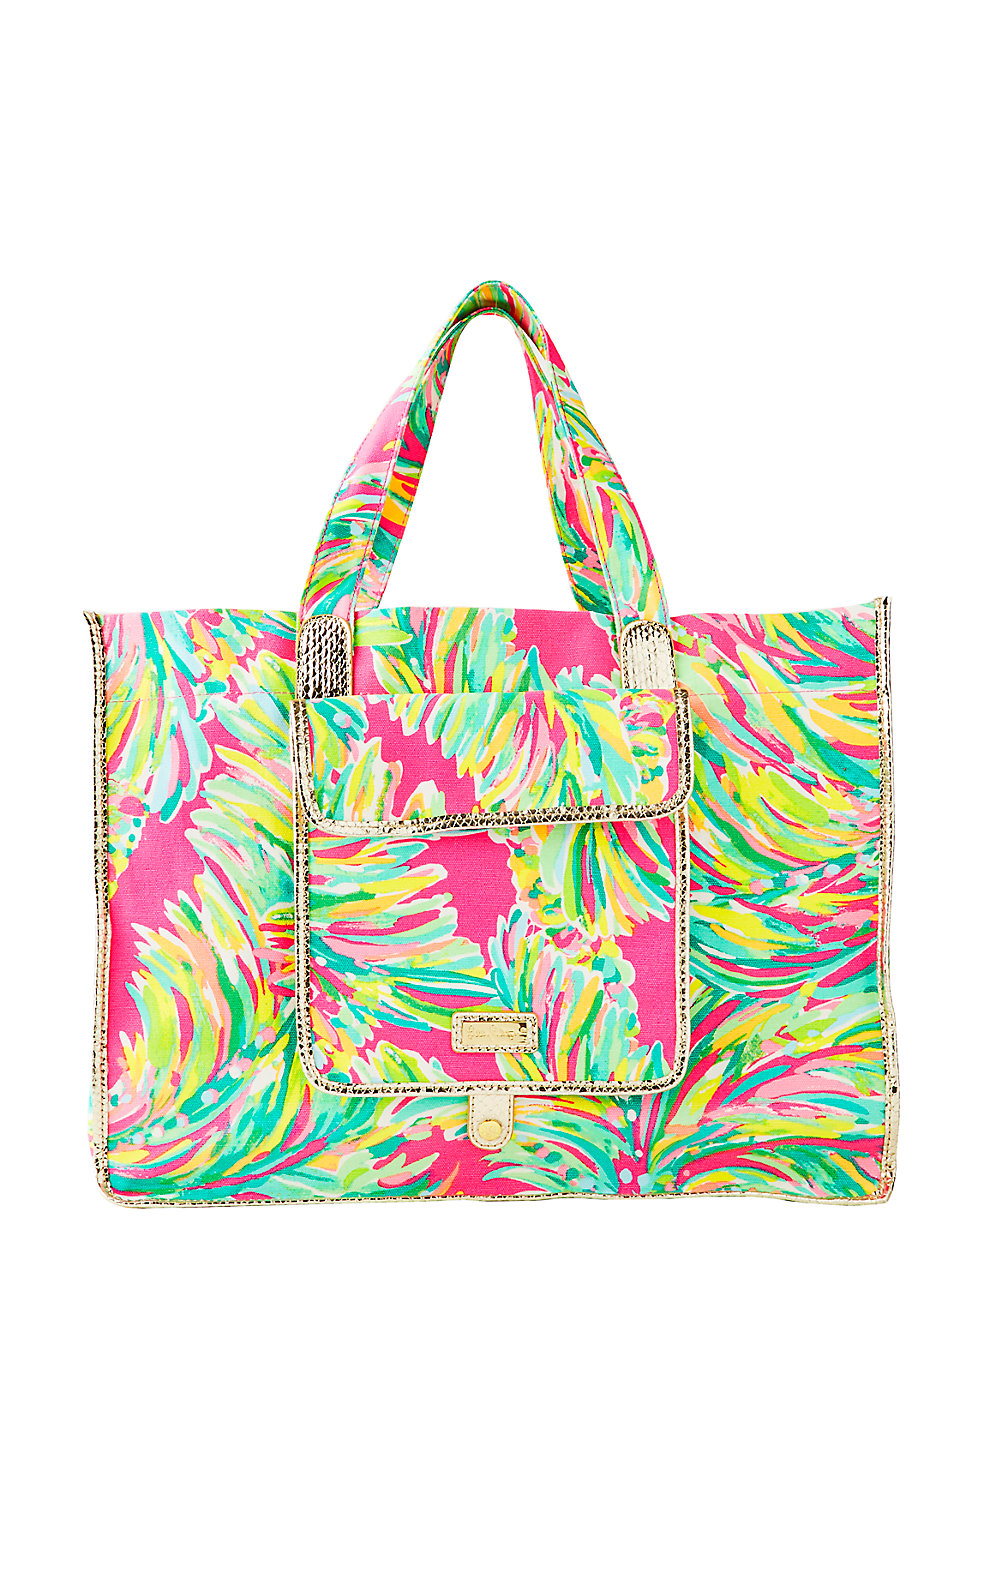 Lilly Pulitzer Sunbathers Foldable Beach Tote Bag